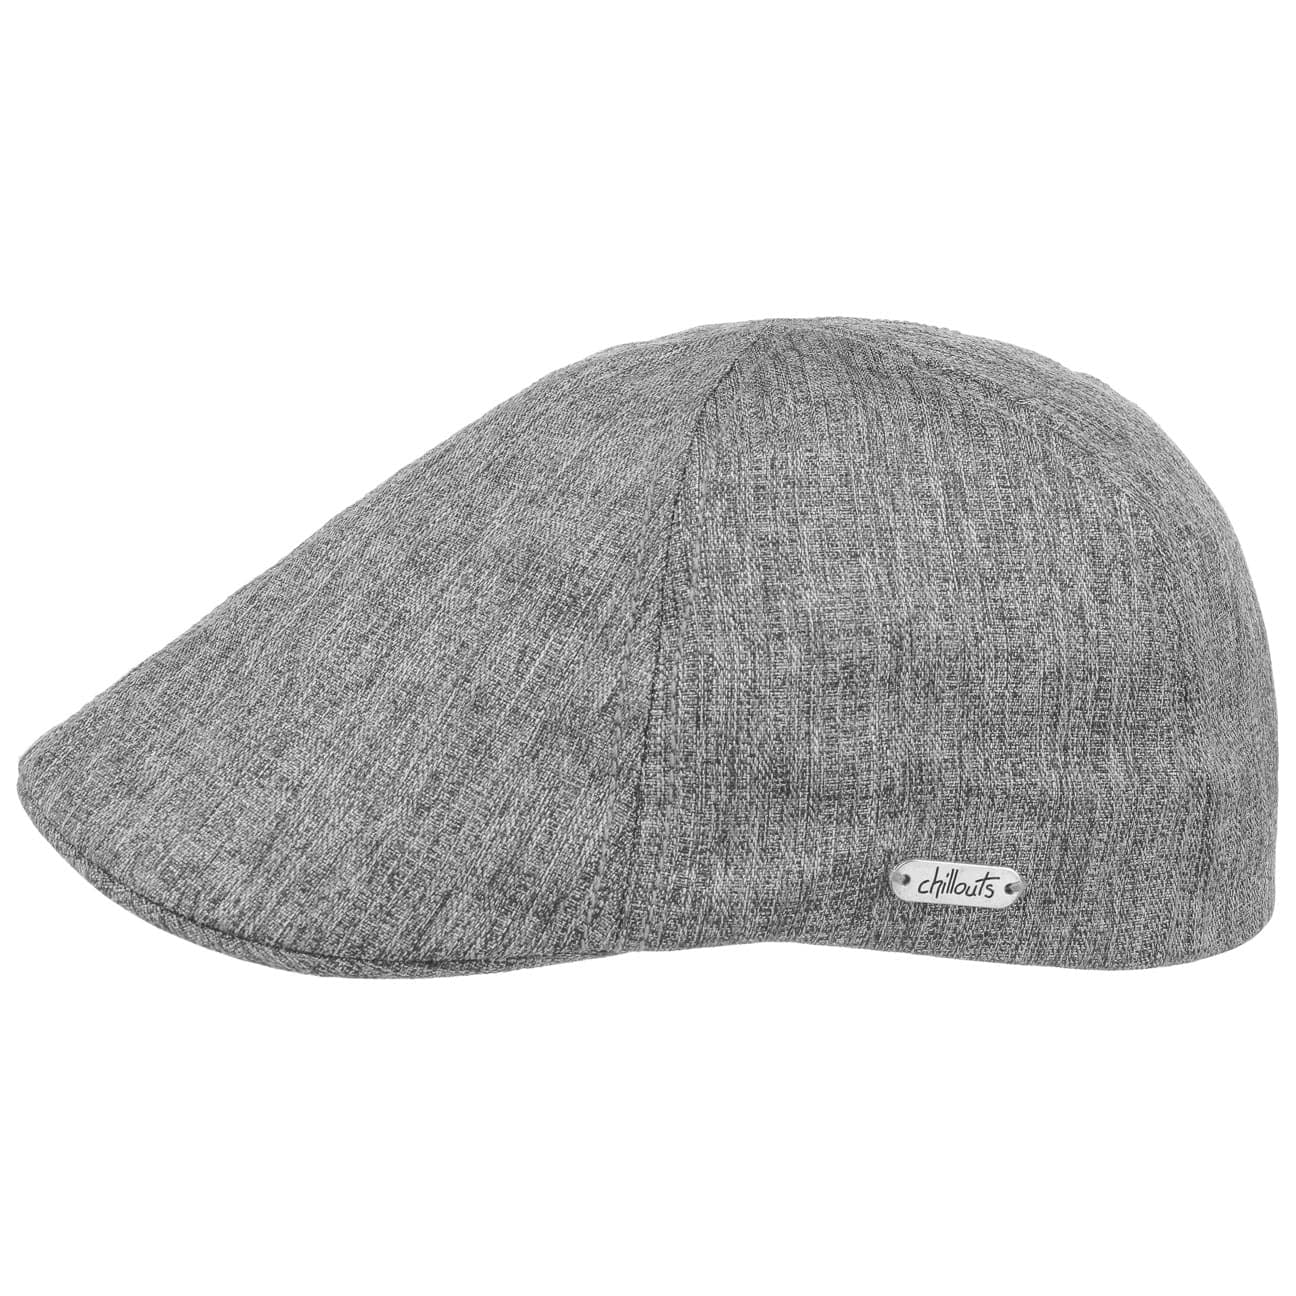 Gorra Birmingham by Chillouts